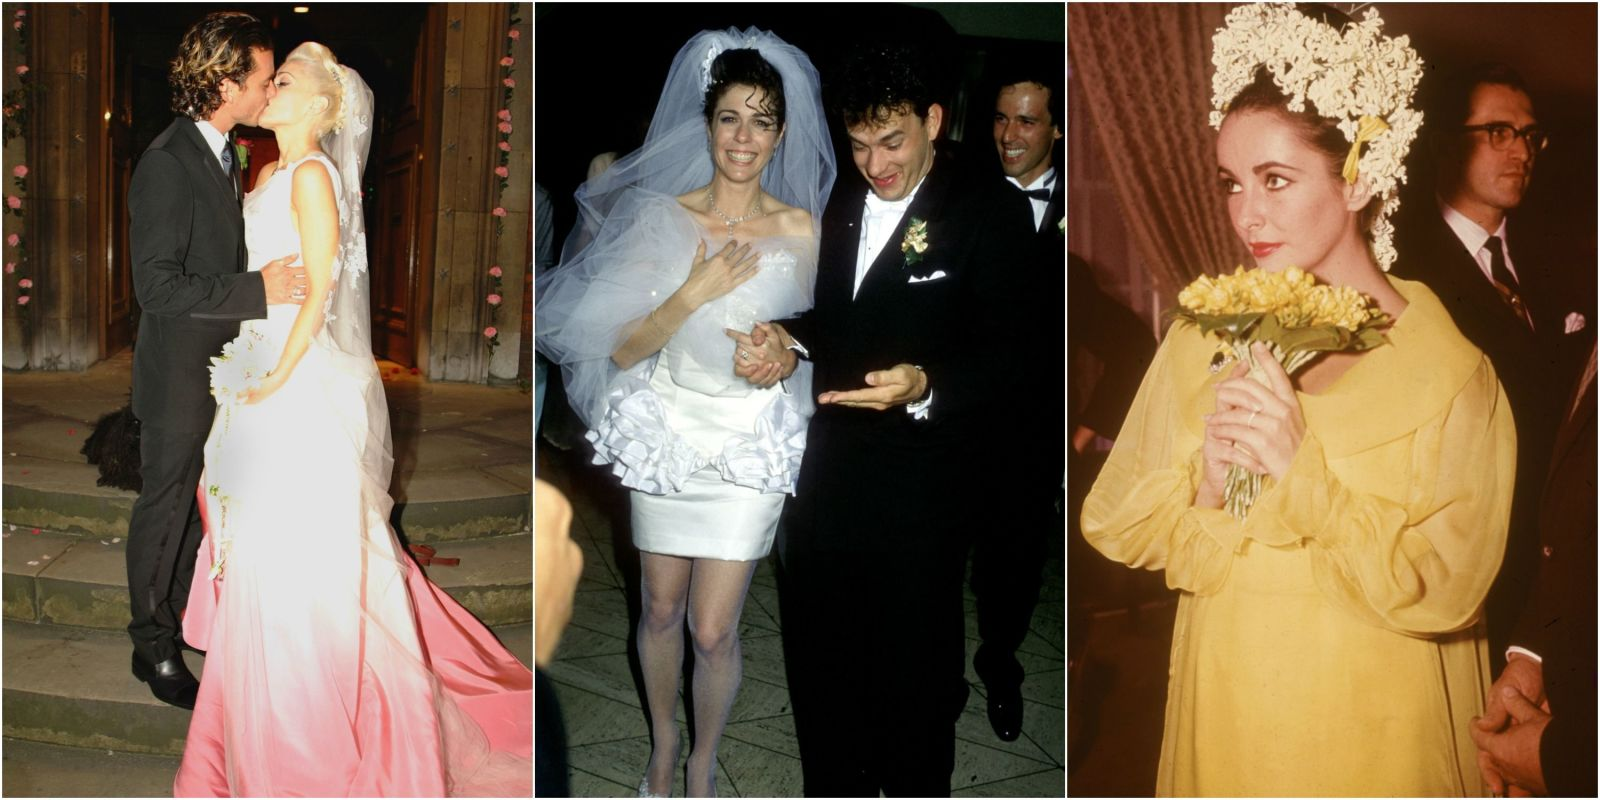 The 16 most scandalous wedding dresses of all time famous the 16 most scandalous wedding dresses of all time famous wedding gowns ombrellifo Gallery